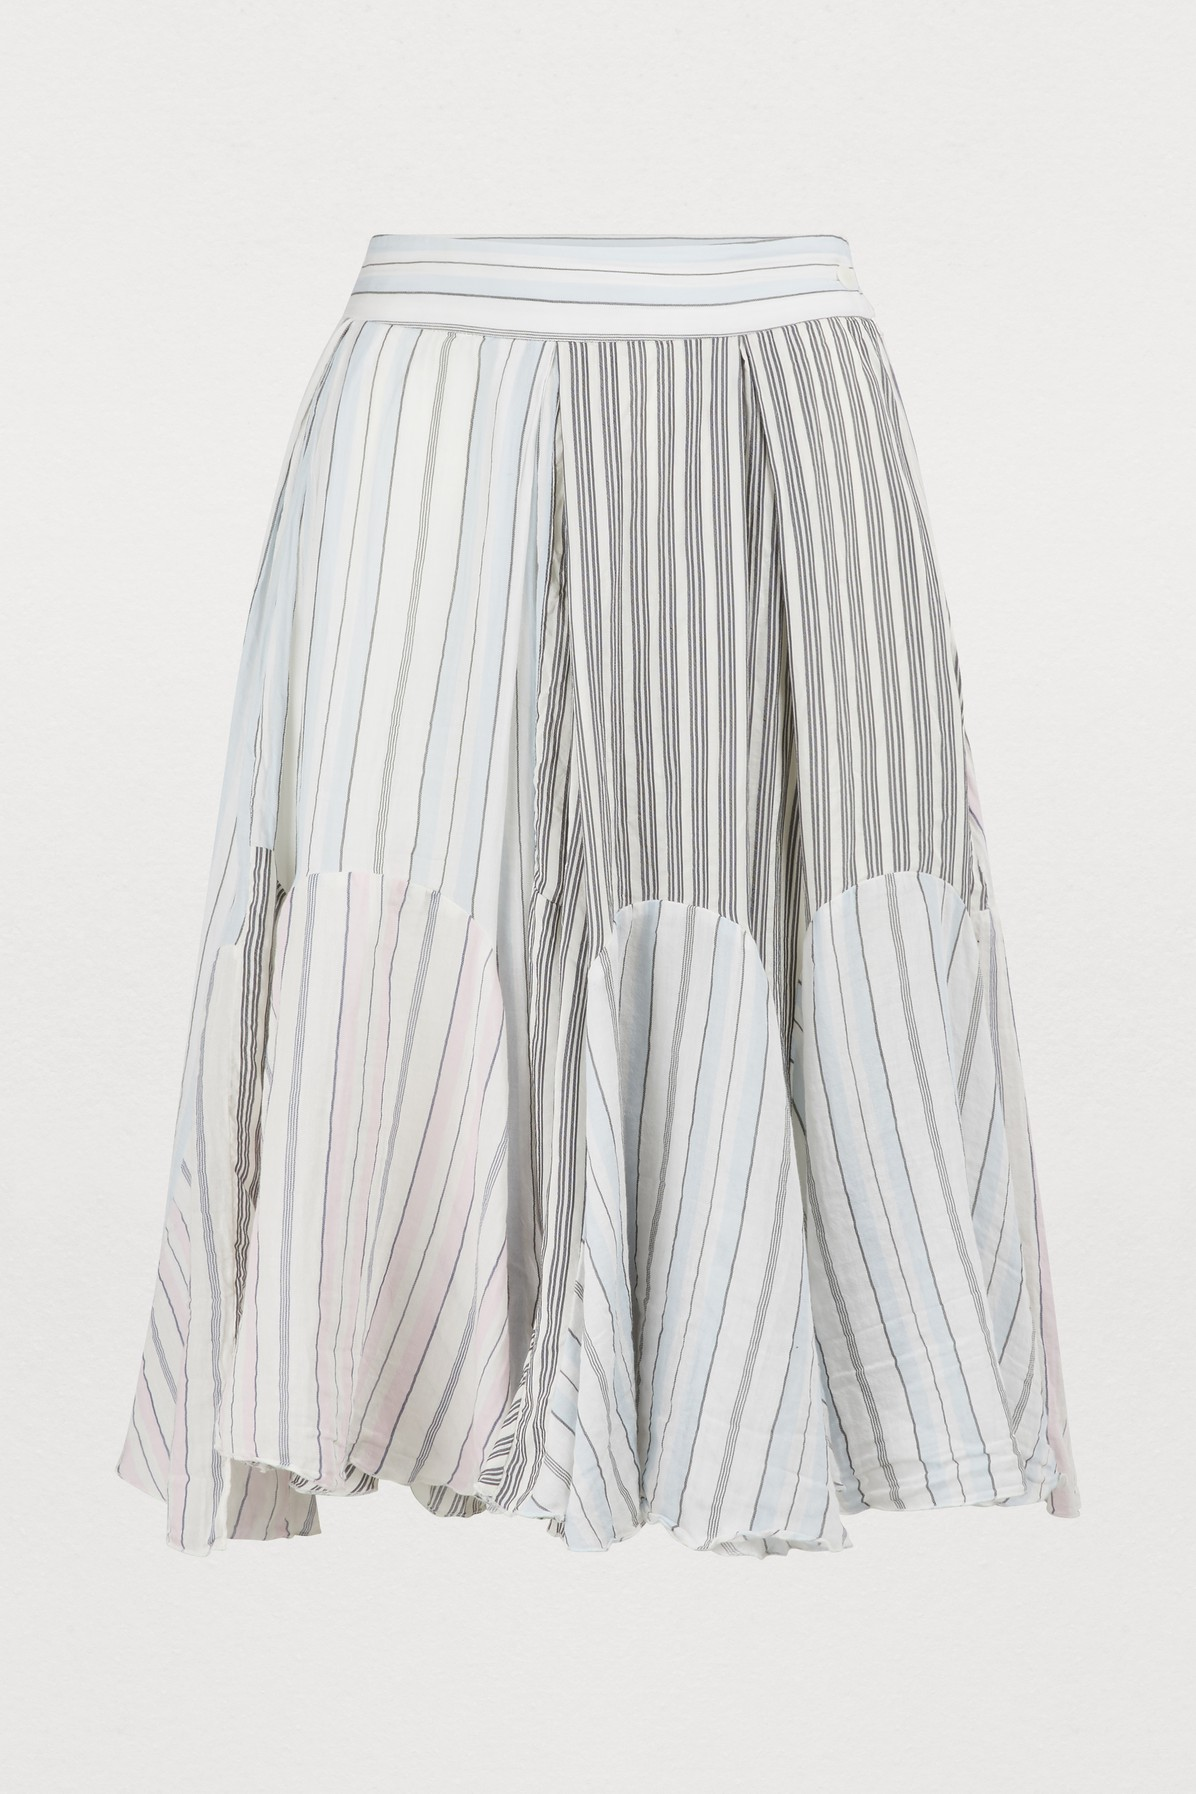 J.w.anderson Striped skirt